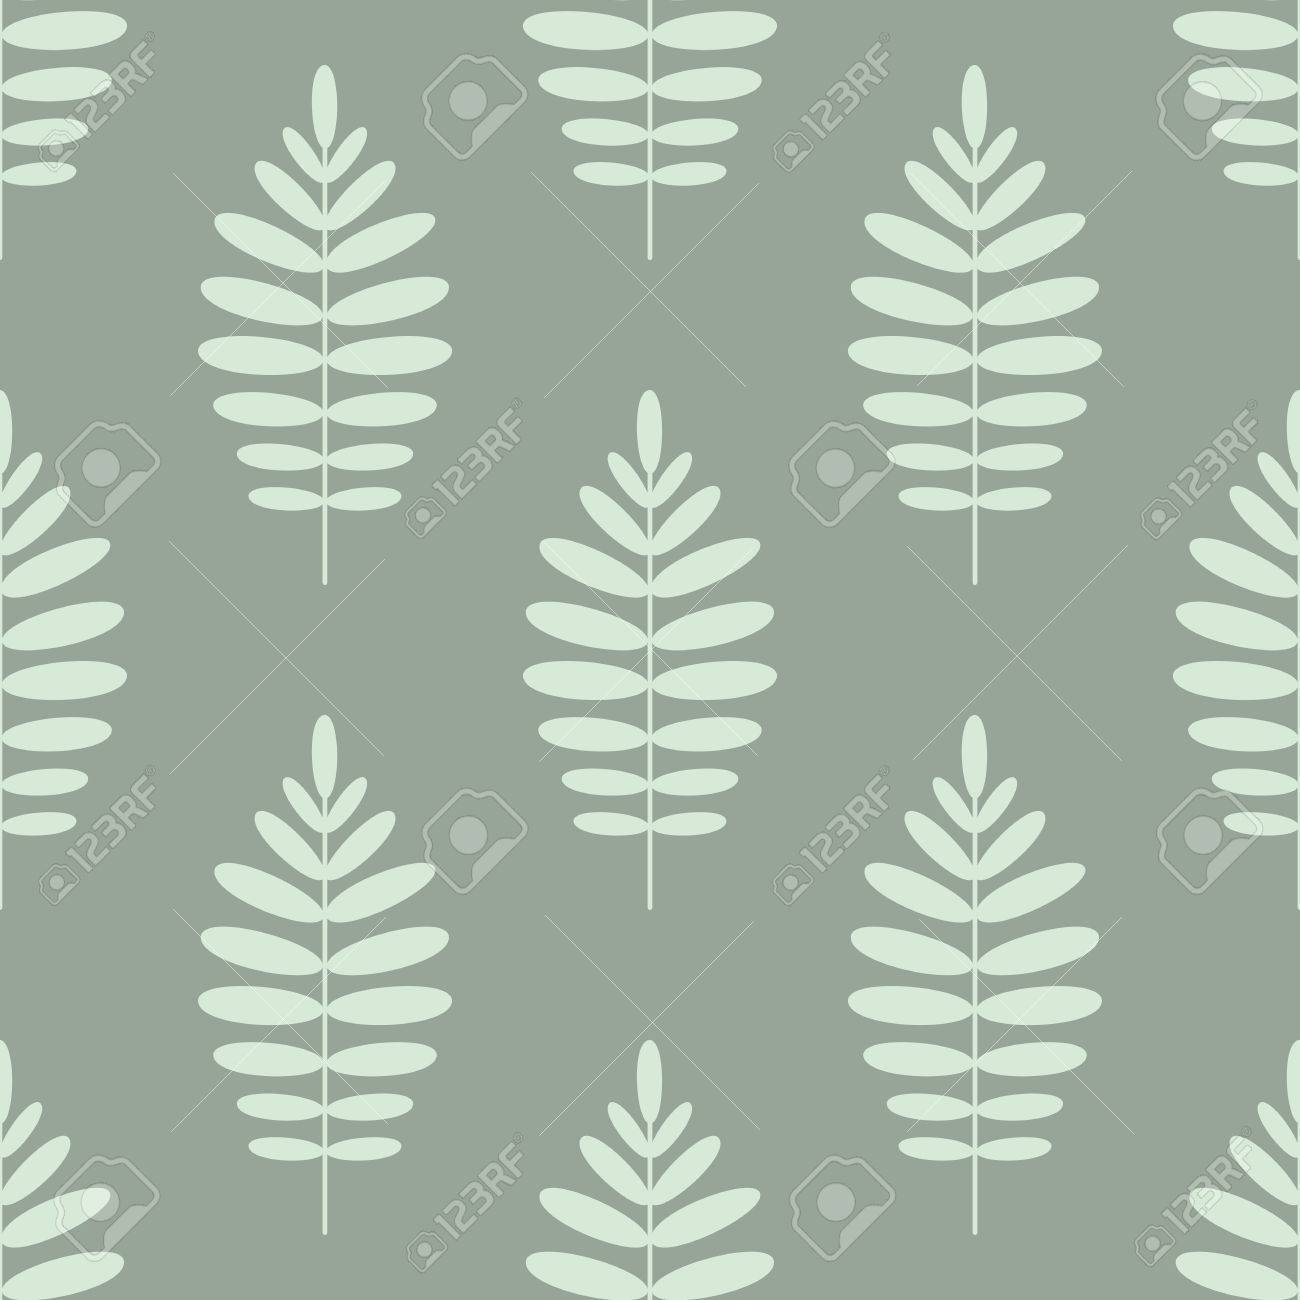 Tropical seamless pattern with branches of palm trees  Exotic